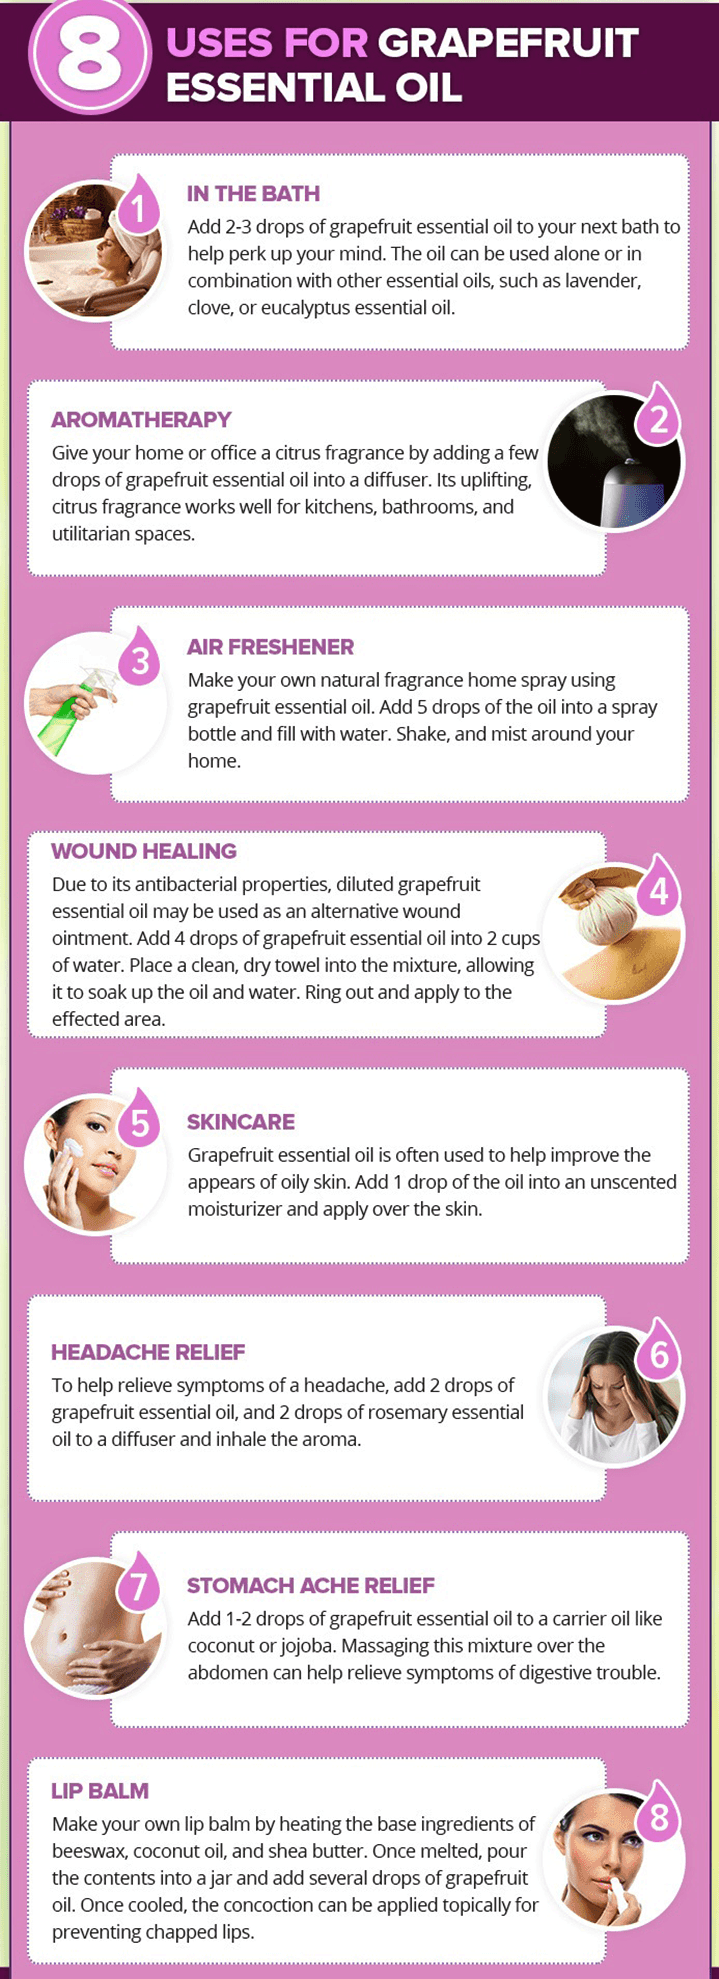 Grapefruit Oil Uses